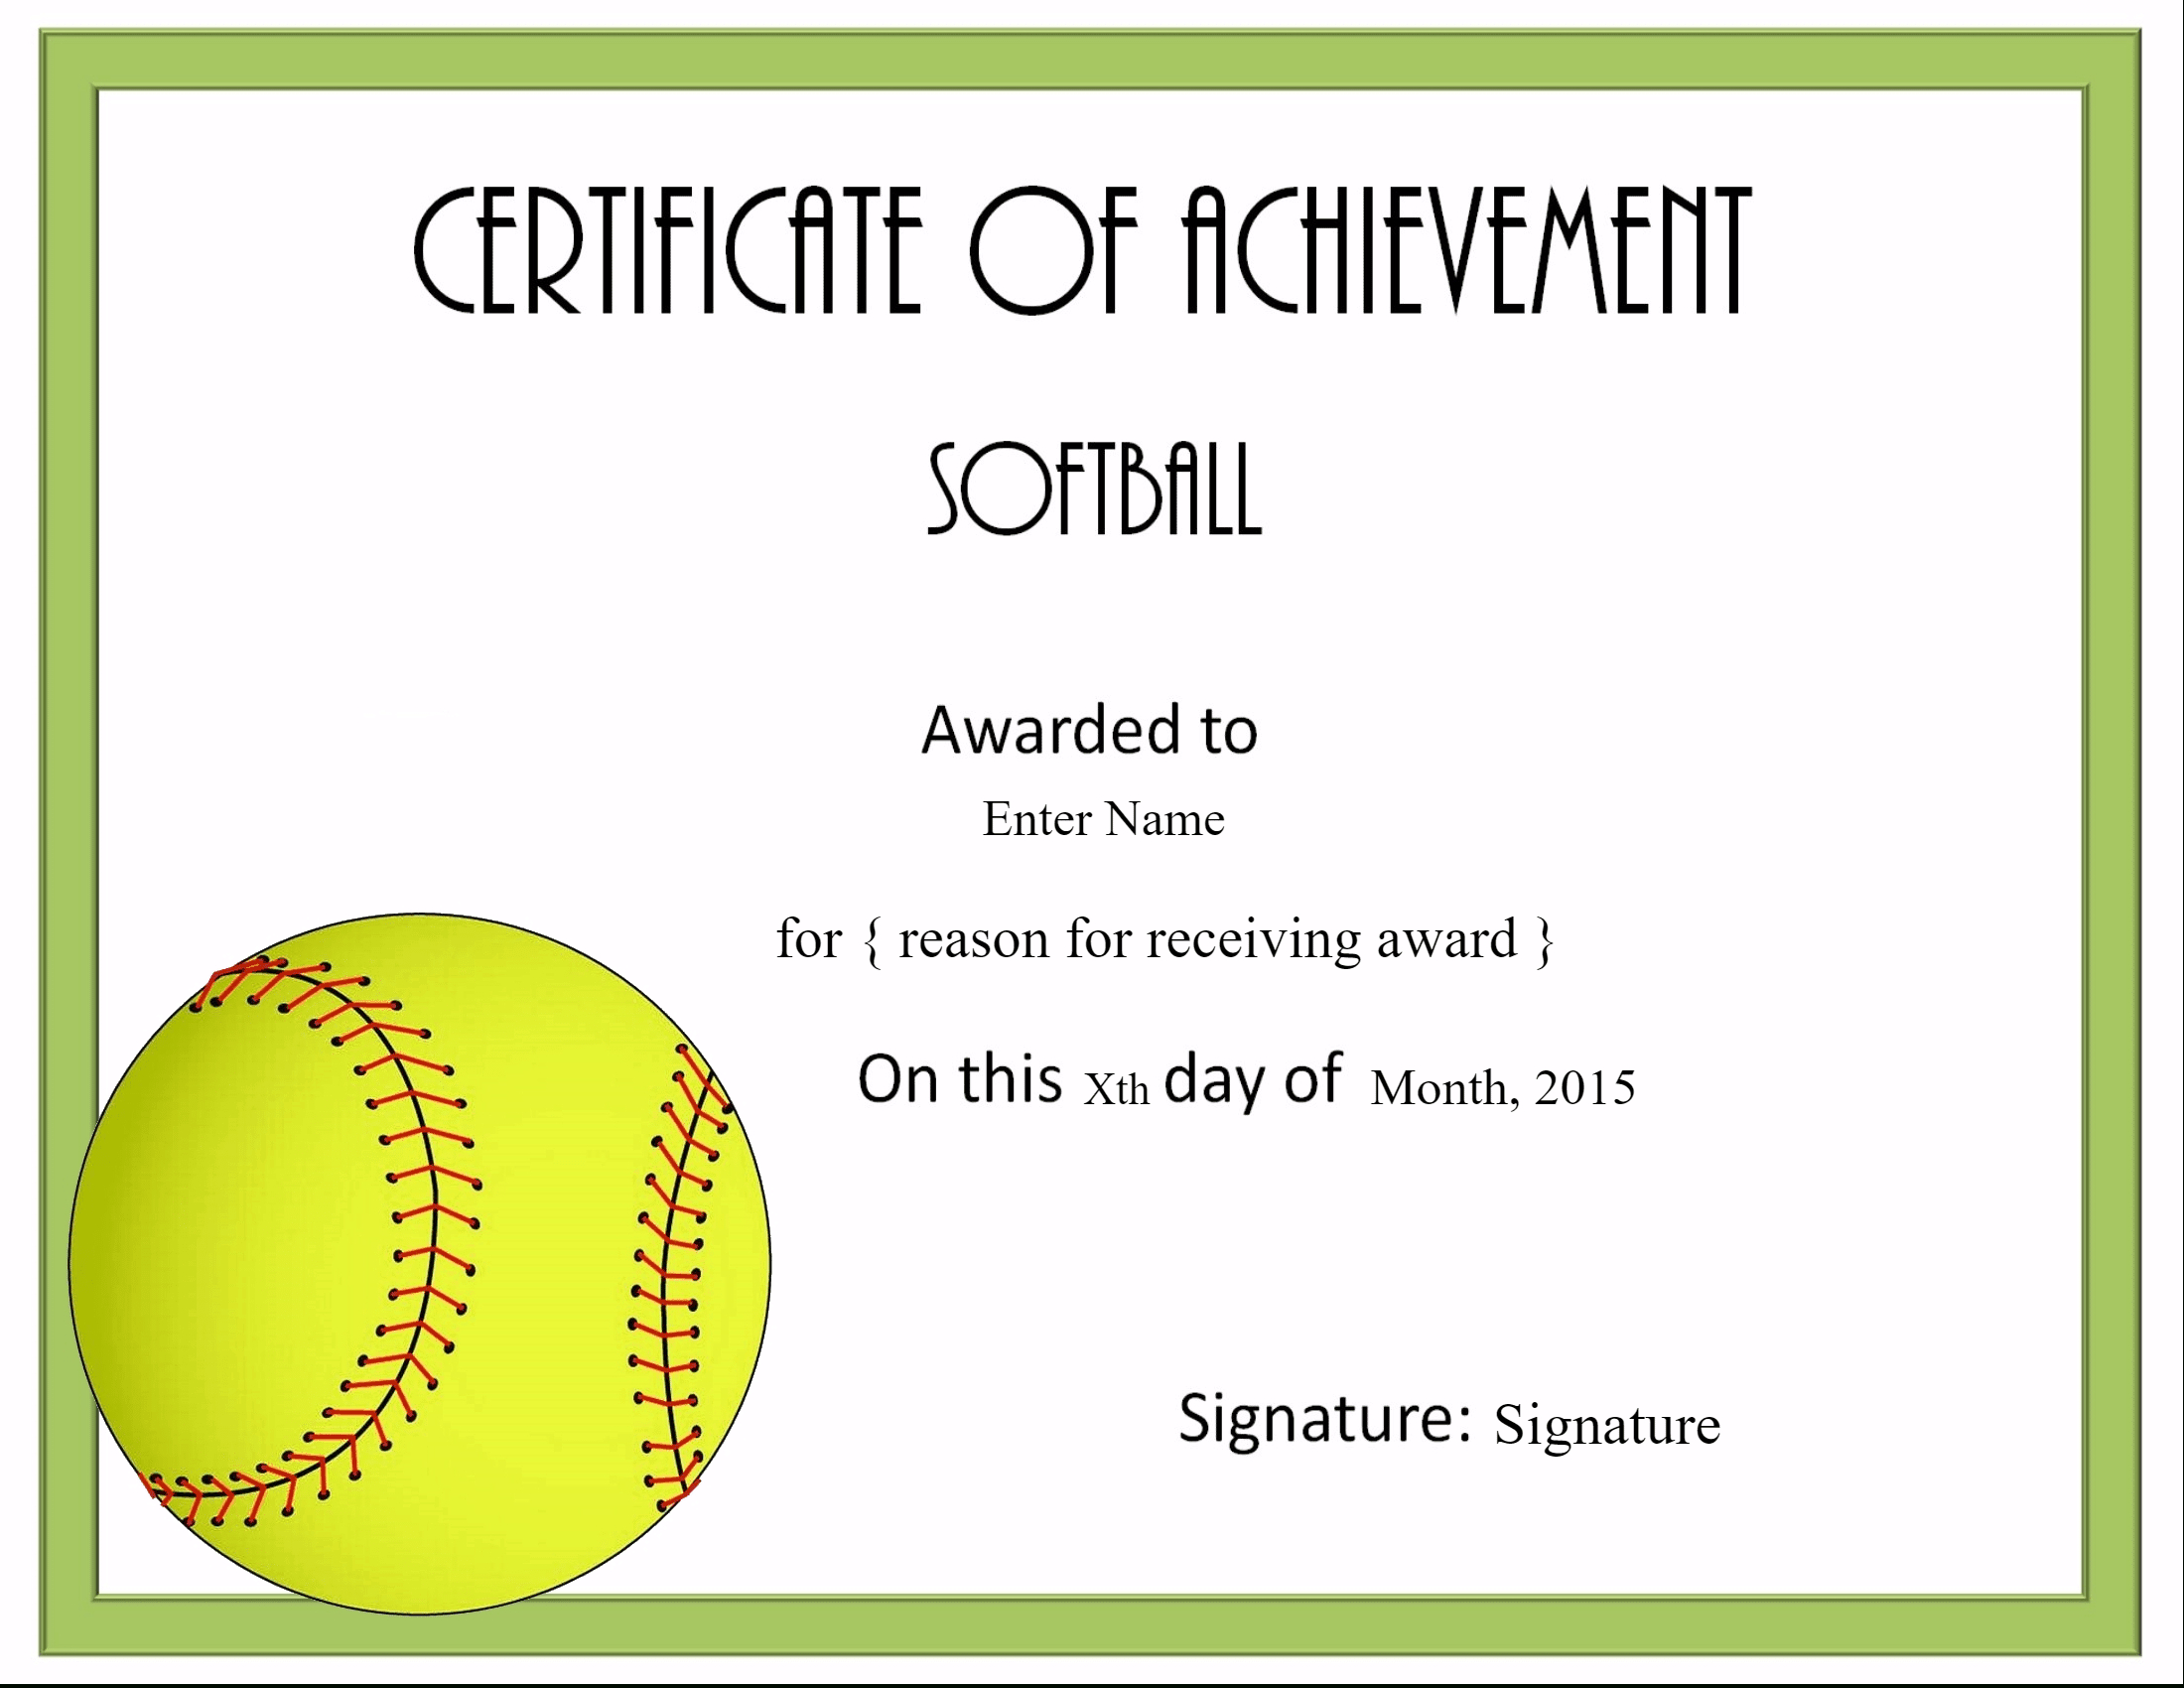 Free Softball Certificate Templates - Customize Online With Regard To Softball Award Certificate Template